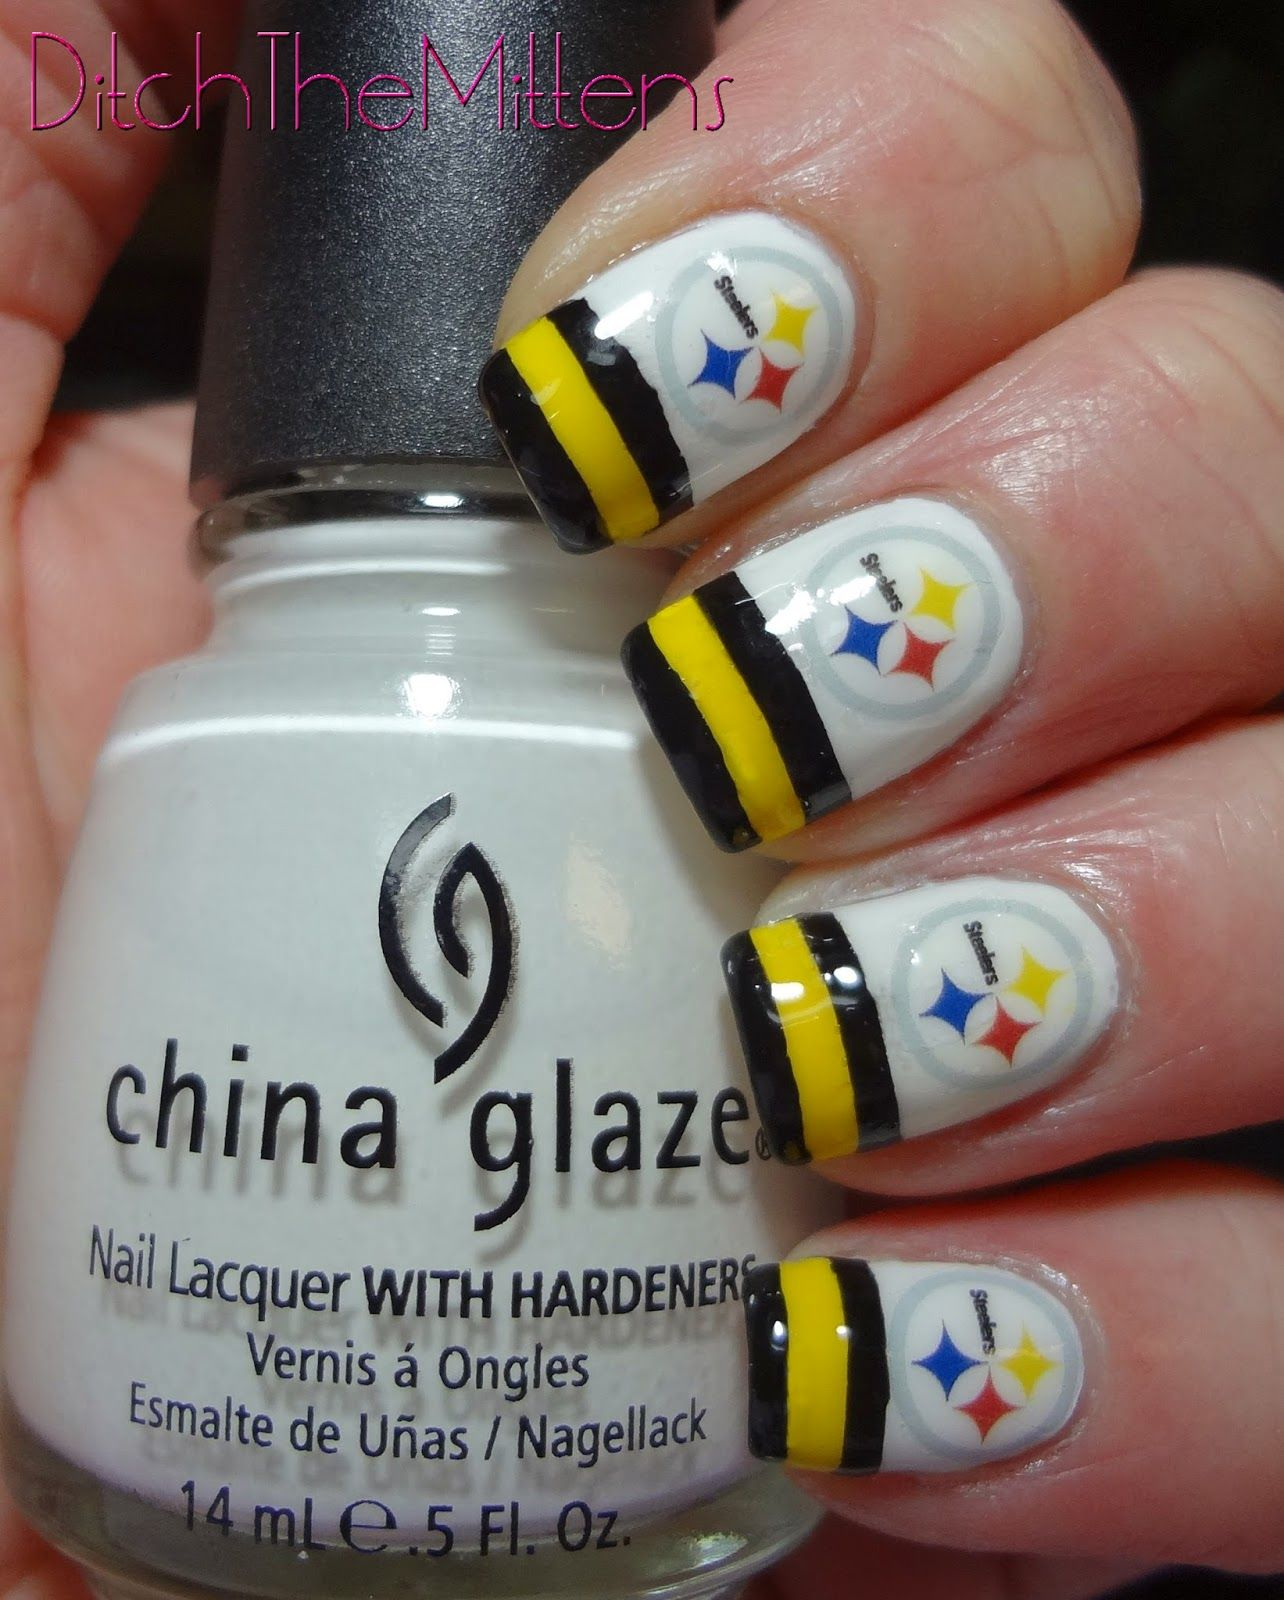 Ditch the mittens pittsburgh steelers nail nails nailart ditch the mittens pittsburgh steelers nail nails nailart more prinsesfo Choice Image